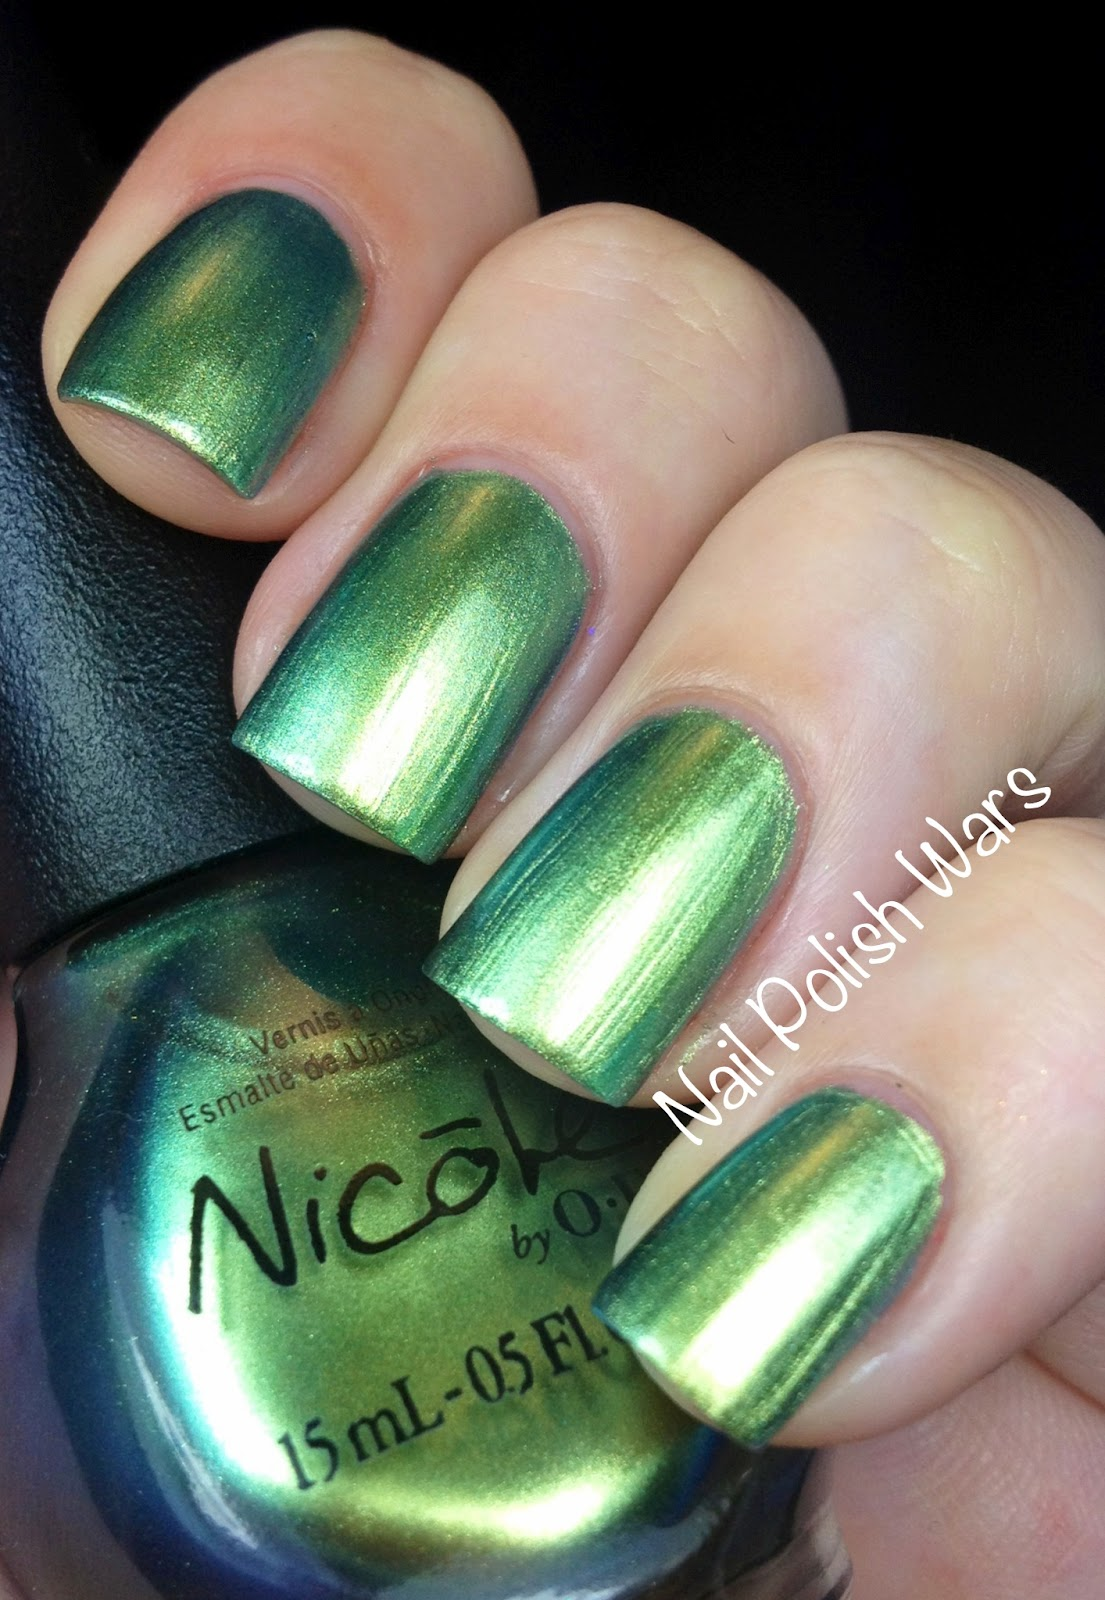 Nail Polish Wars: Nicole by OPI Target Exclusive Collection